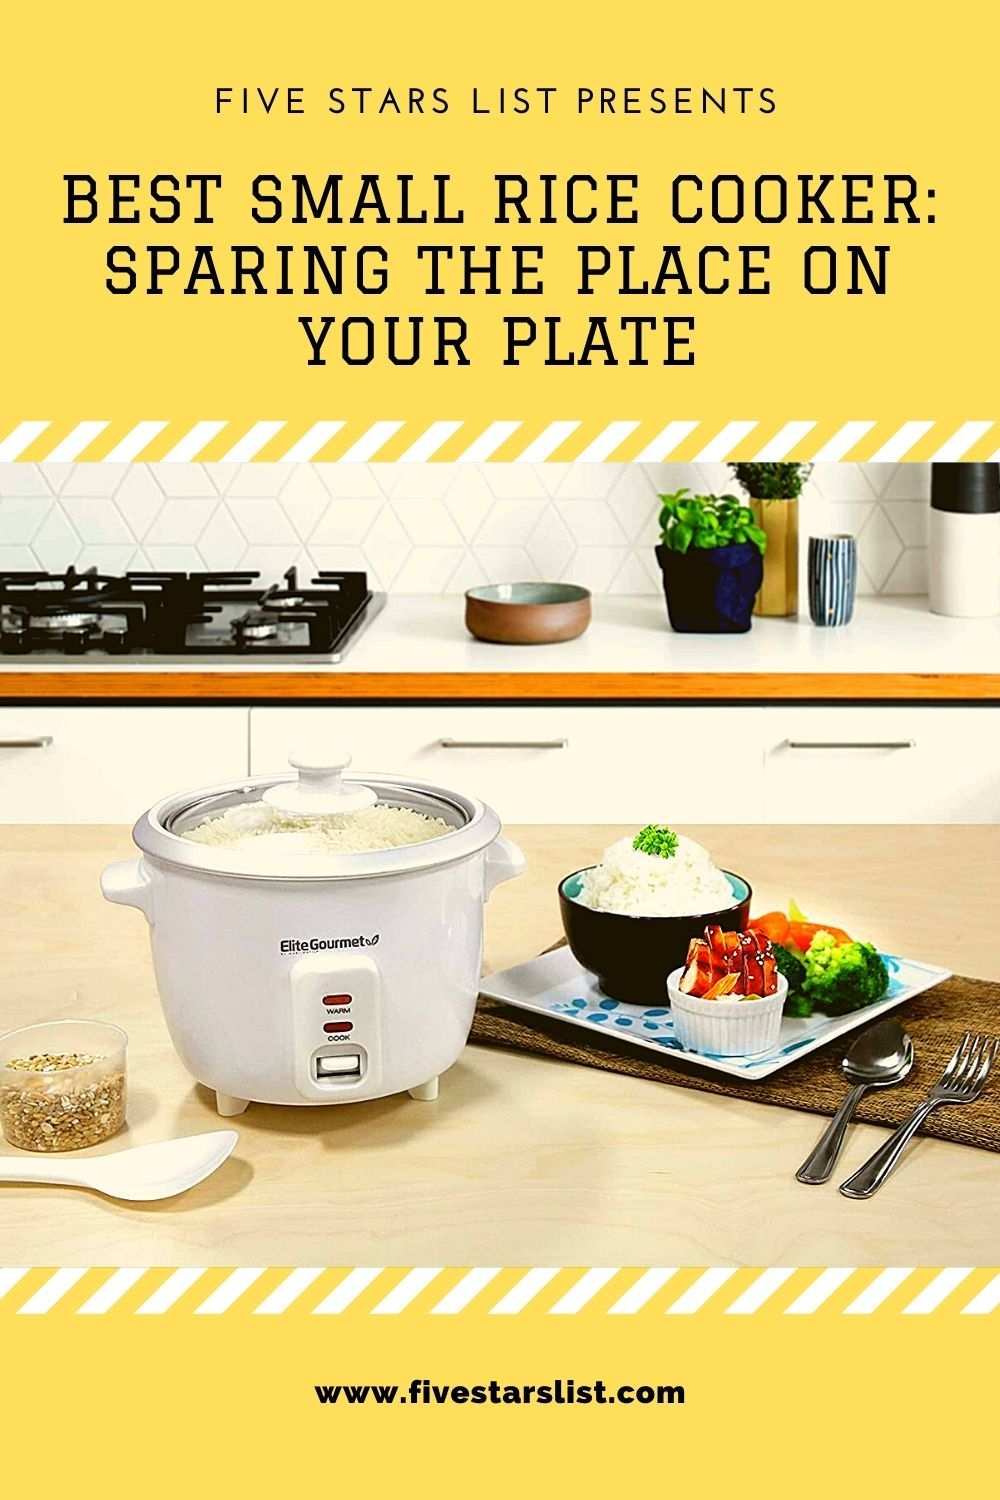 Best Small Rice Cooker: Sparing the Place on Your Plate